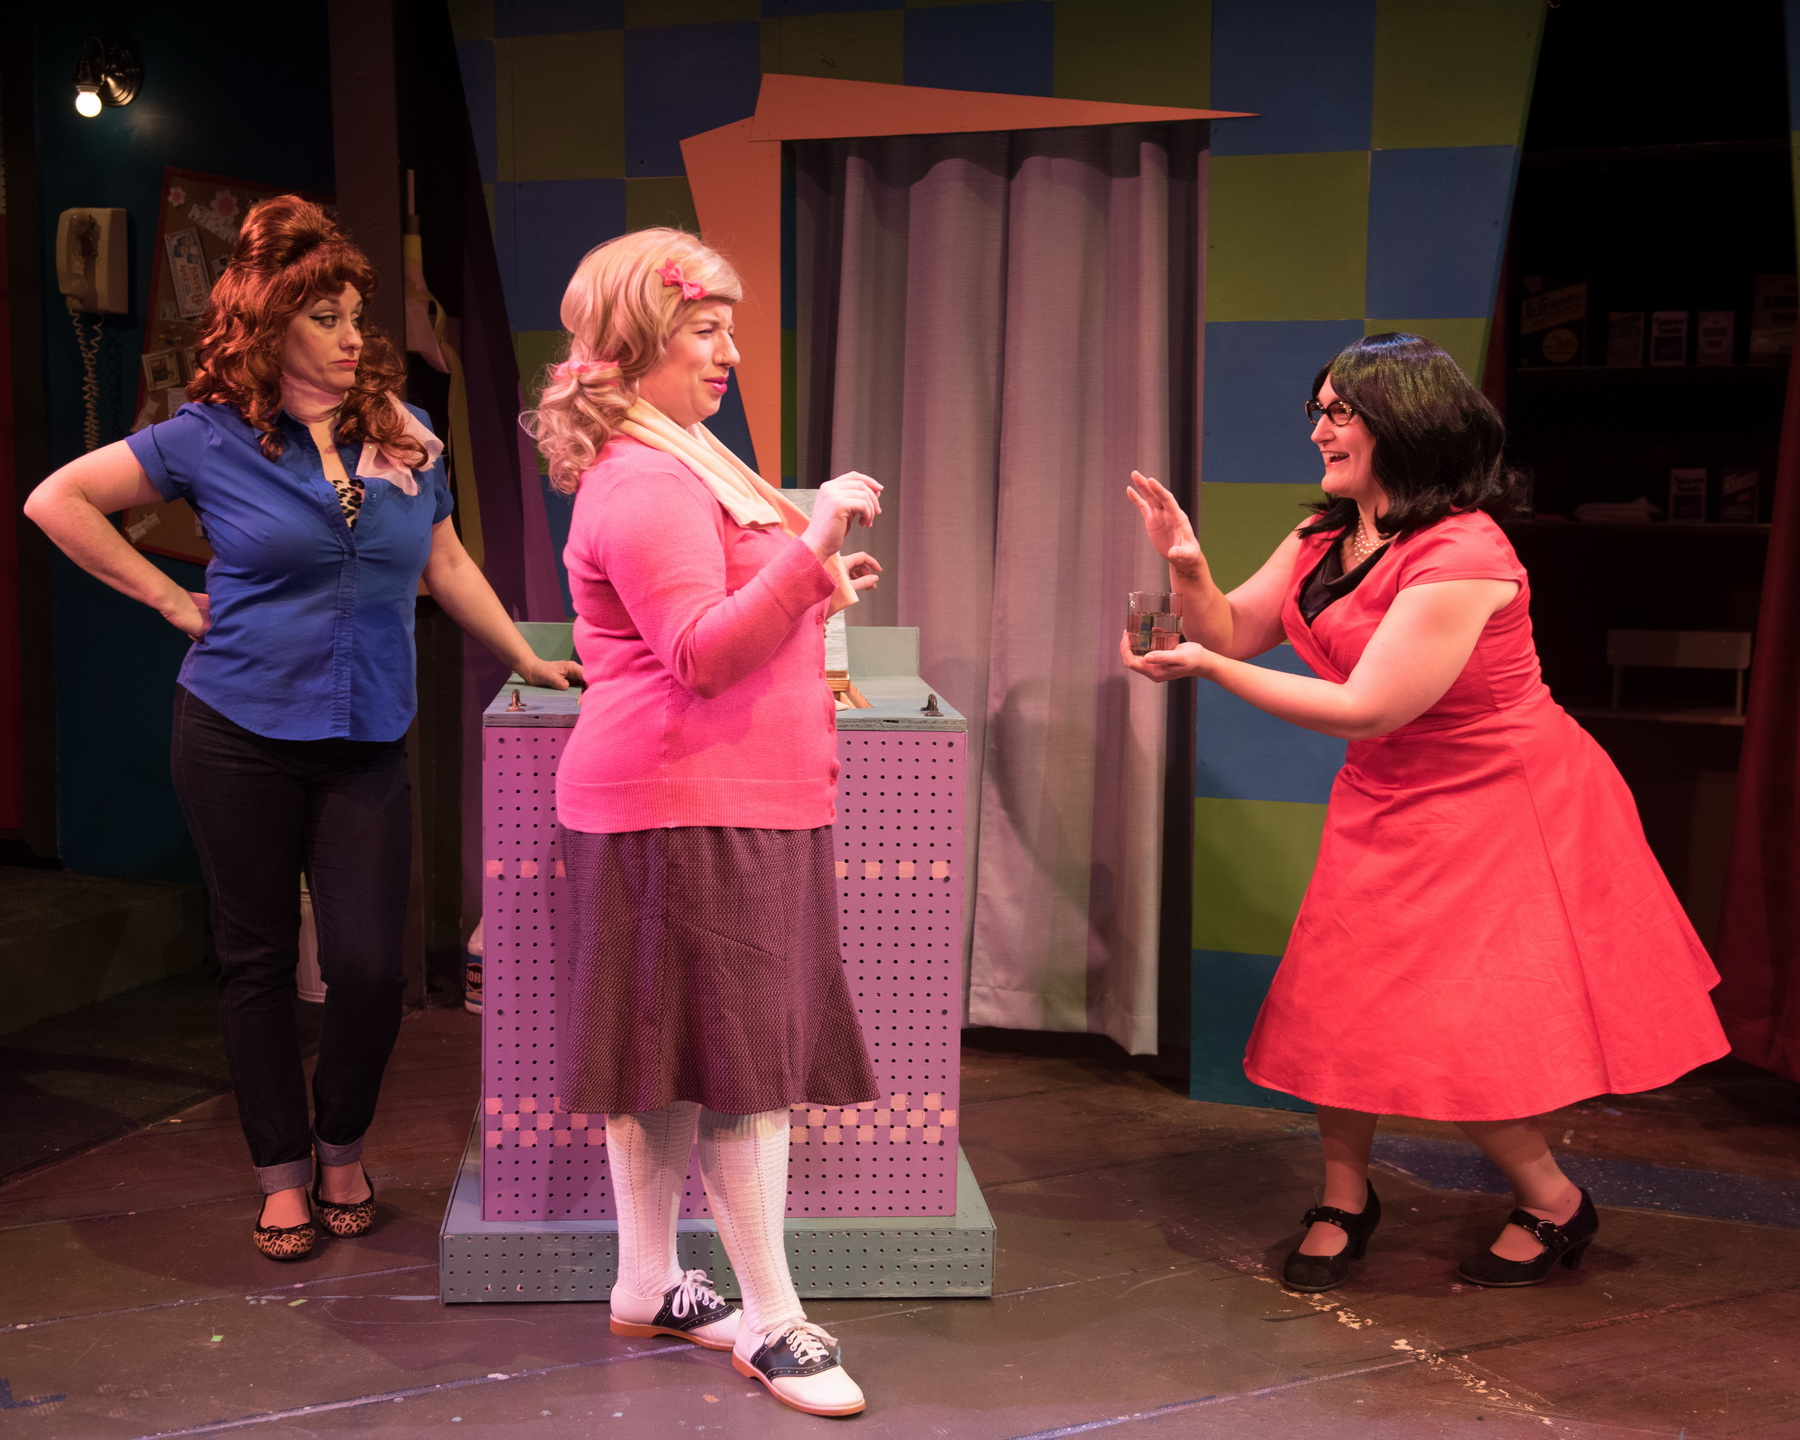 Eileen Canepari as Marge, Ellie St. Cyr as Cindy, and Kate Klotzbach as Dee Dee